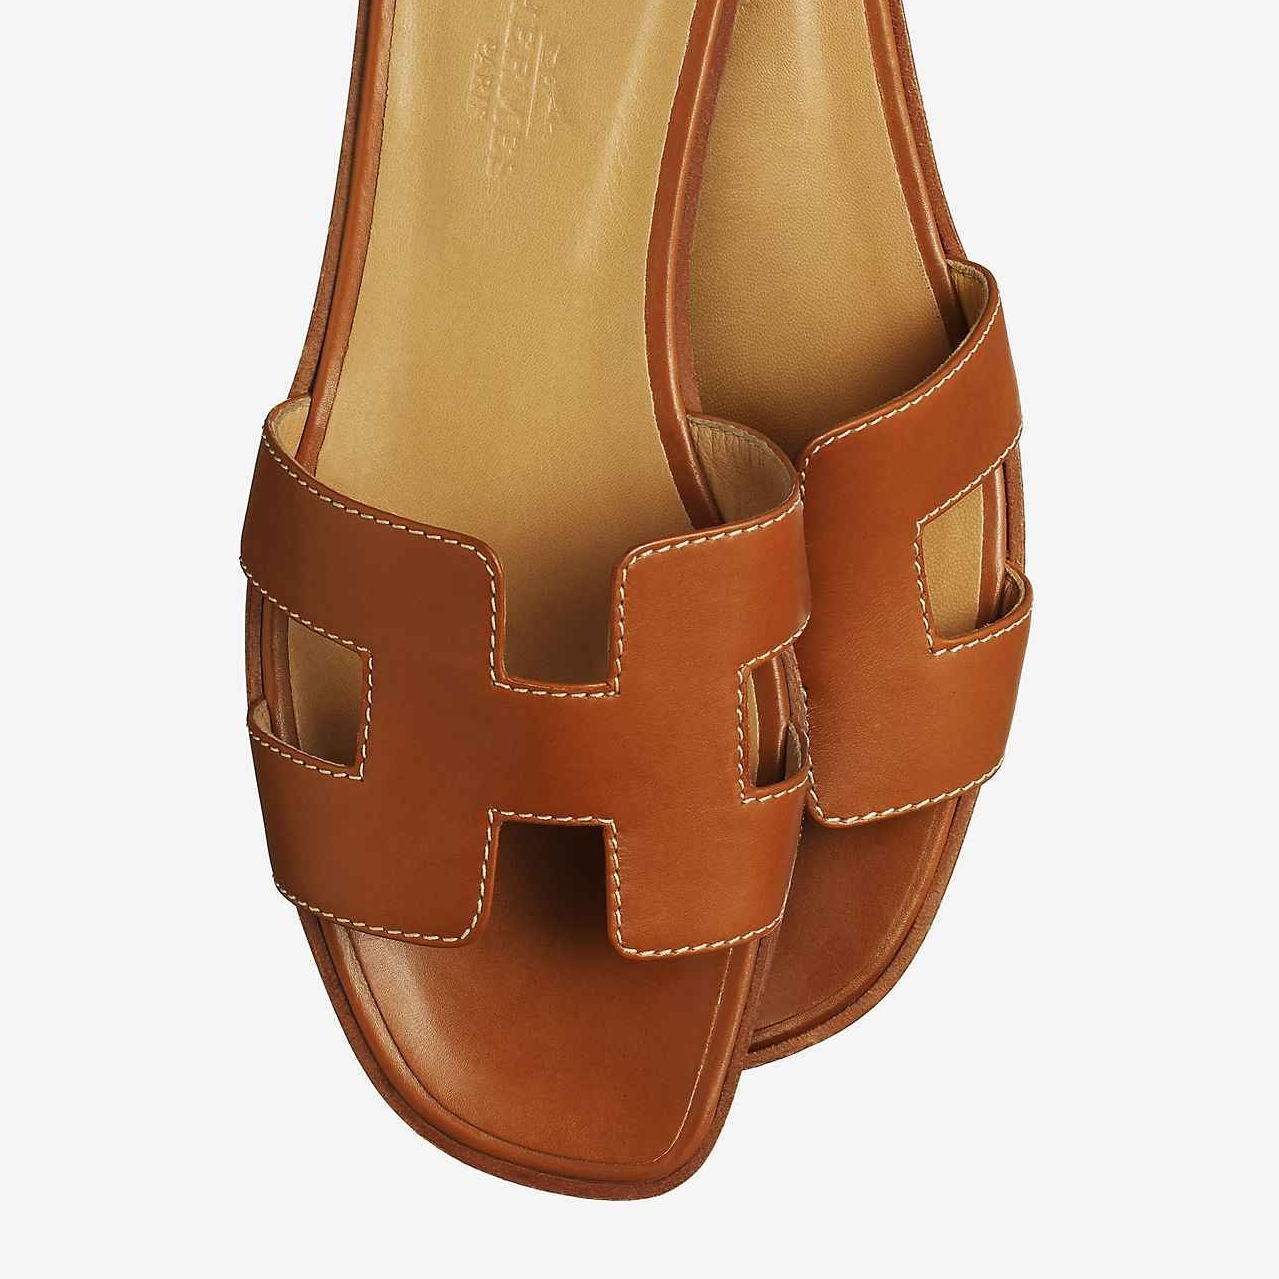 d6cd7cb805e Designer Shoes And Their Dupes #3 Hermes Oran Sandal — Cafe Carrie ...